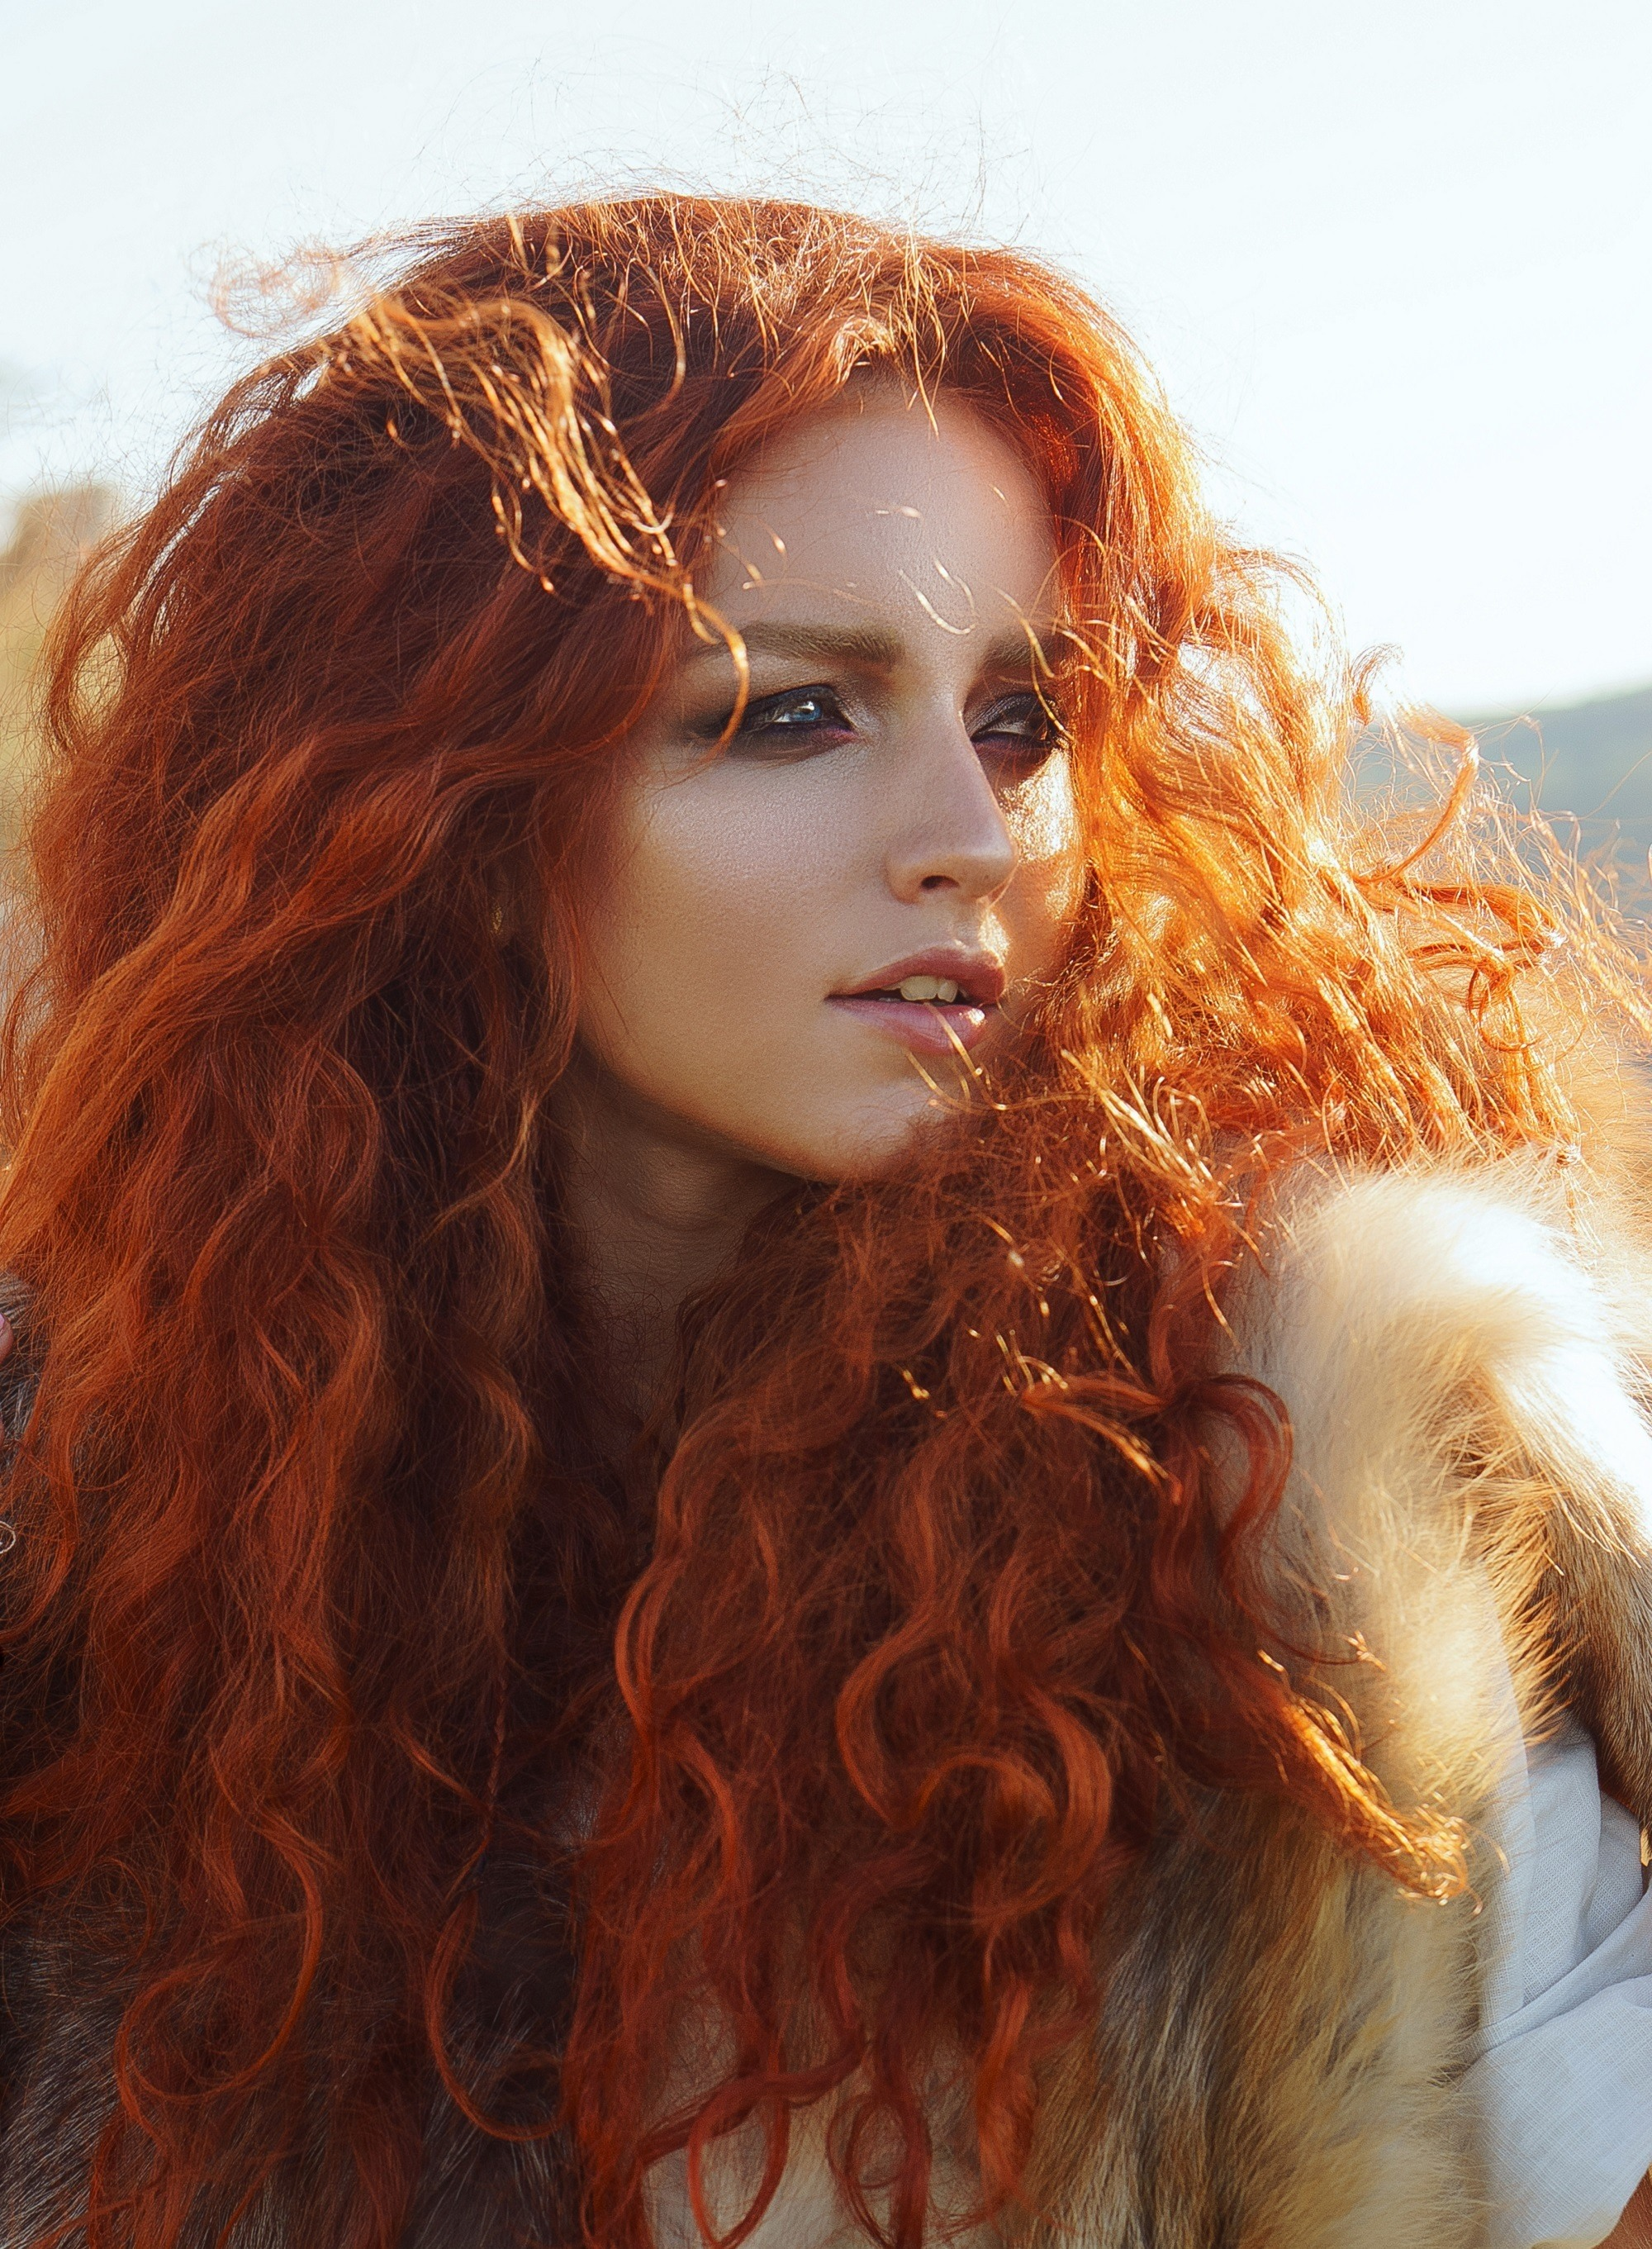 Halloween glam hair: Woman with long red thick curly hair looking at the side in outdoor location